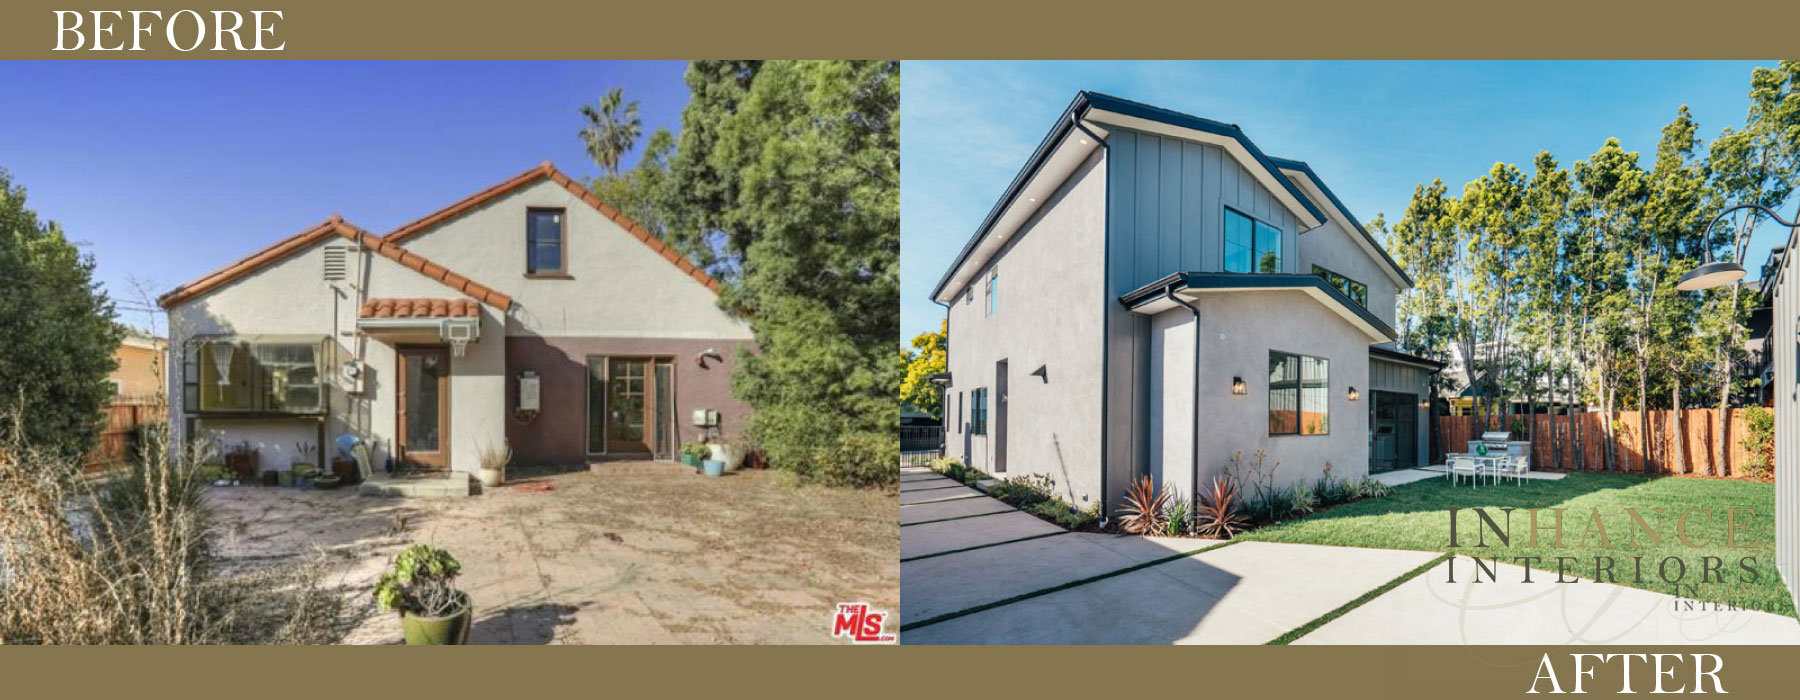 Laurel-2_before-and-after_exterior.jpg